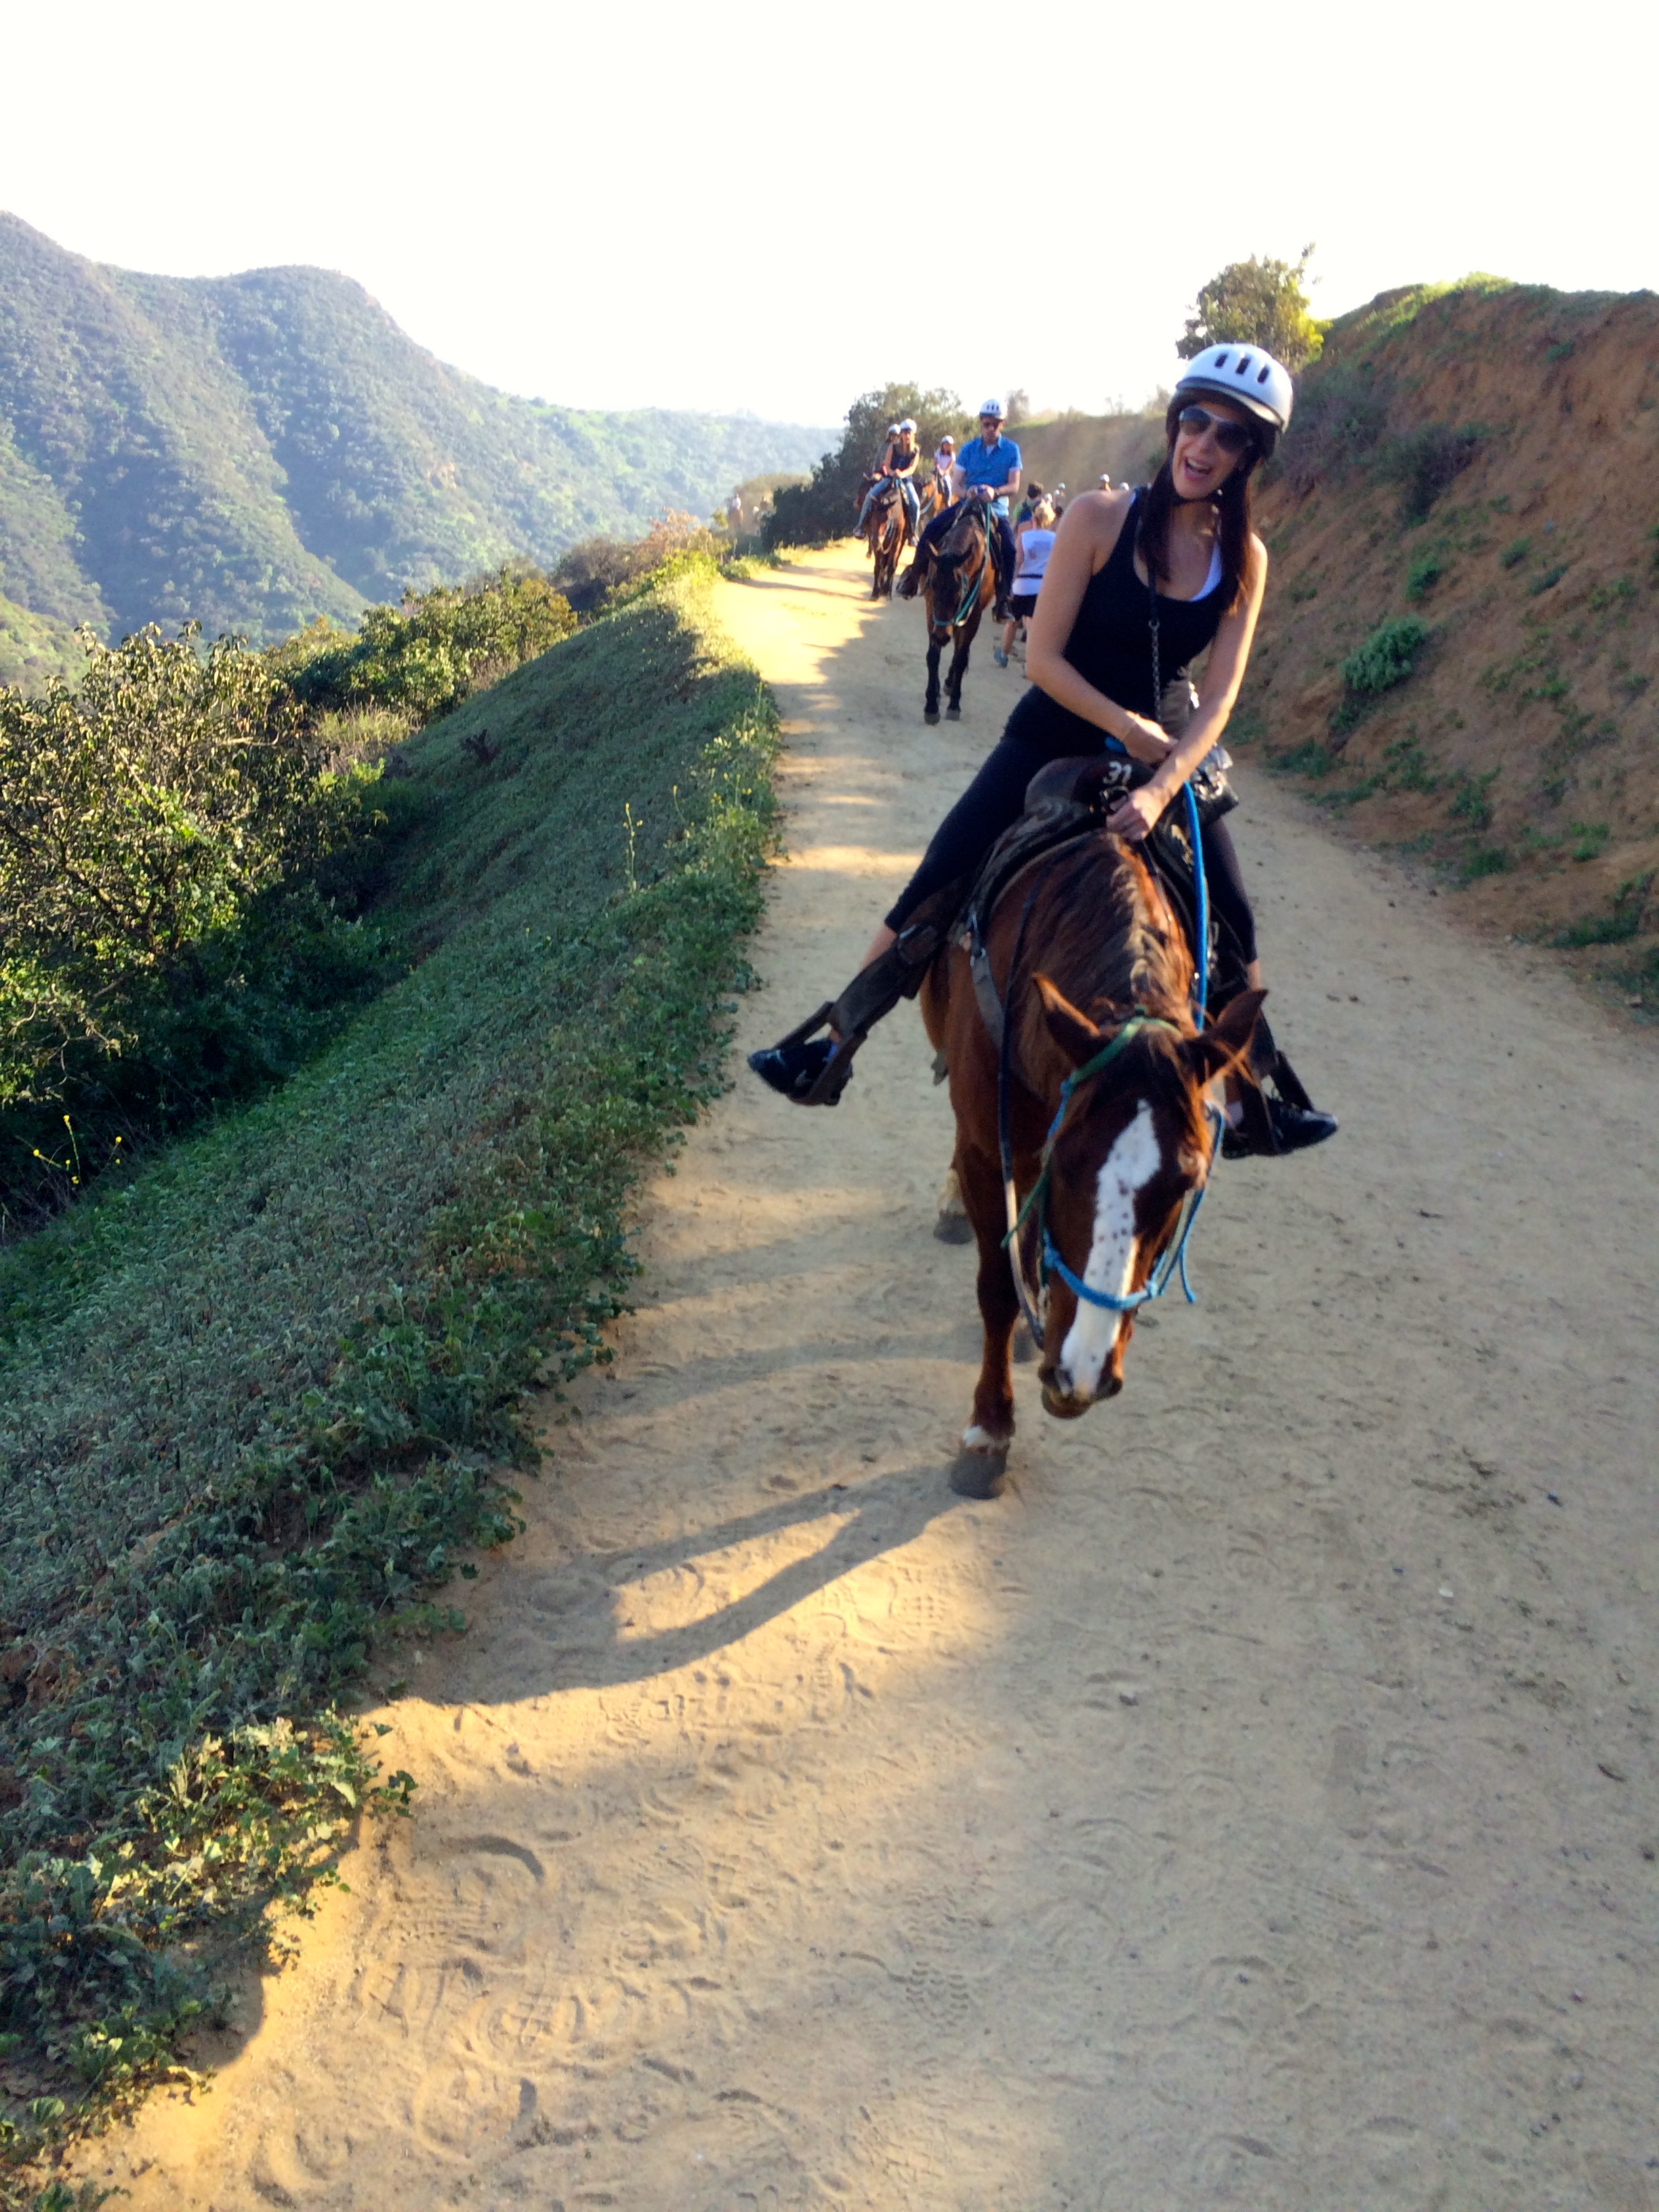 Horseback riding in Griffith Park.